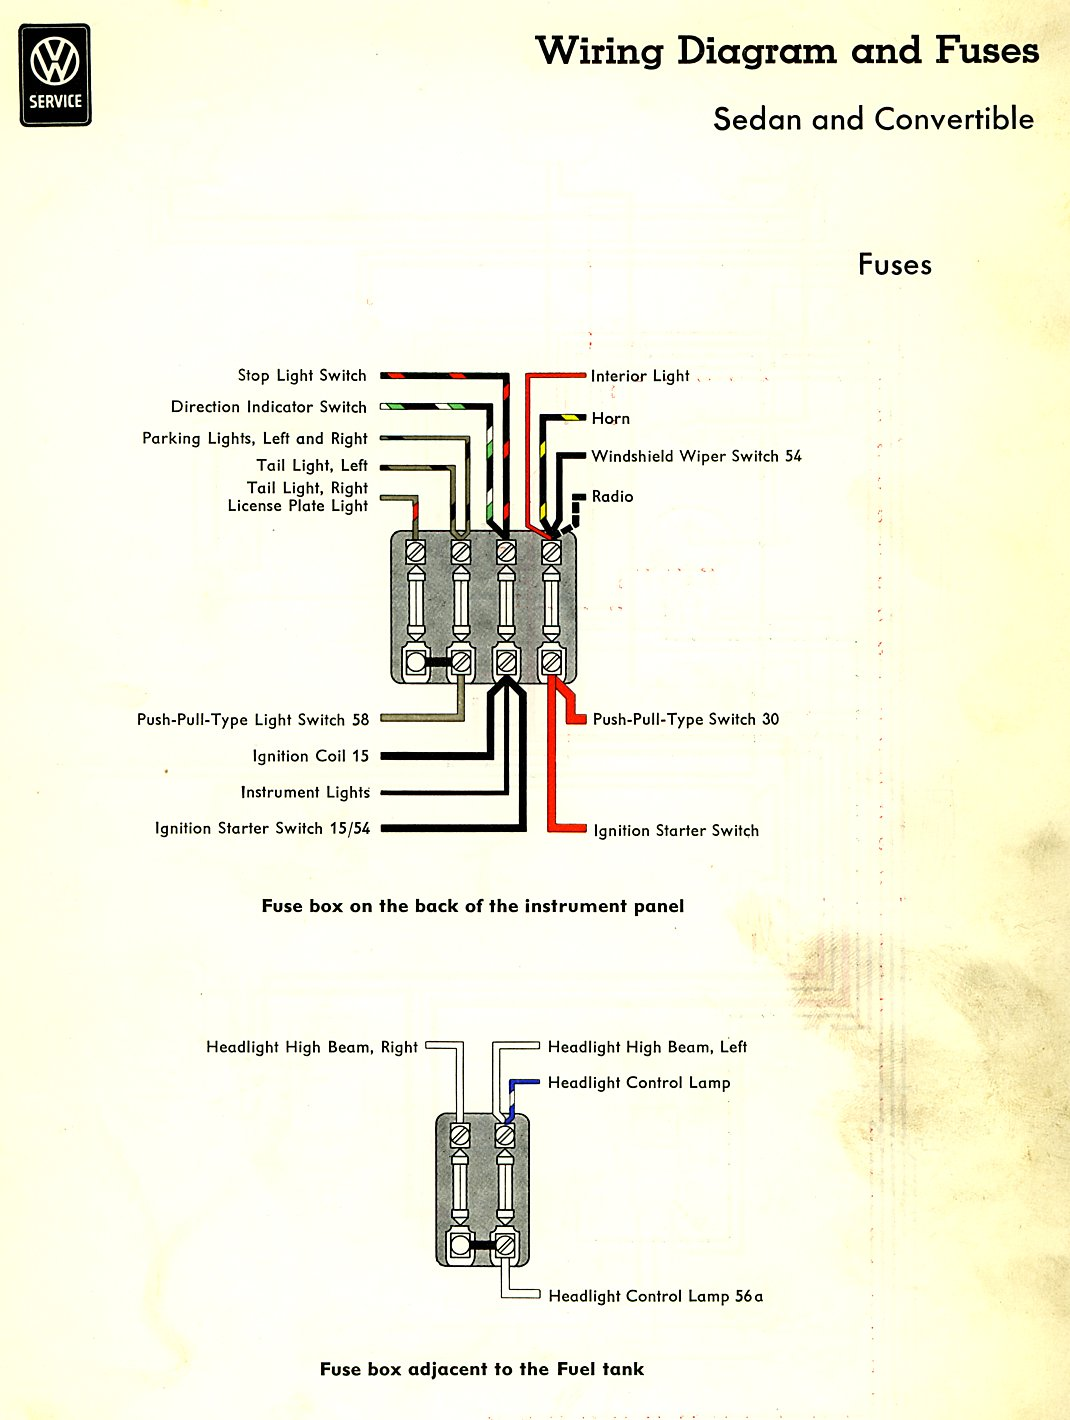 1966 beetle wiring diagram | thegoldenbug.com 66 vw horn wiring diagram 66 vw bug wire diagram of #11